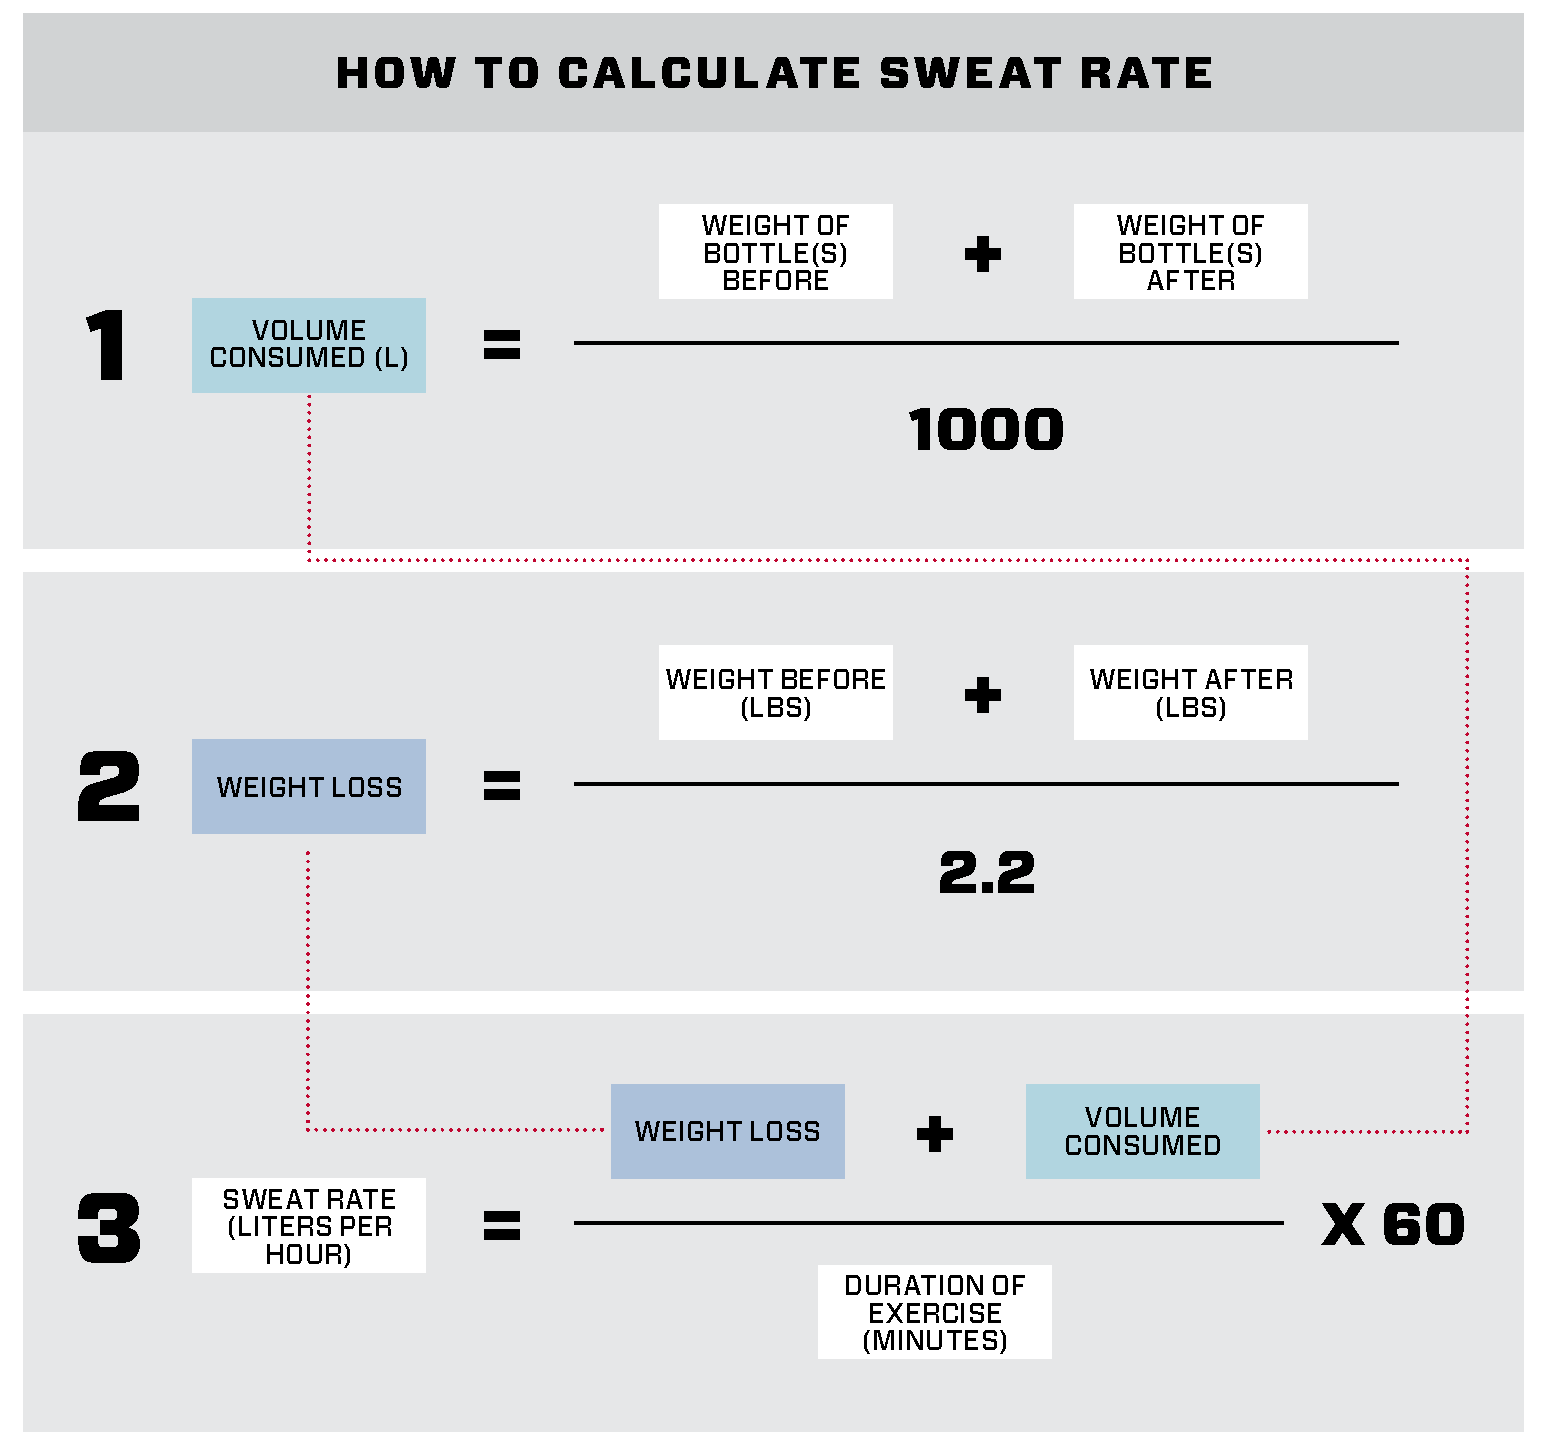 Figure 5:  Calculate the volume of fluids consumed, the weight loss and then the sweat rate with these equations. Simply fill in the measurements and calculate your sweat rate. The sweat rate will be different depending on intensity of exercise and weather conditions. Therefore, it is advised to do several measurements to understand your range of sweat rates.